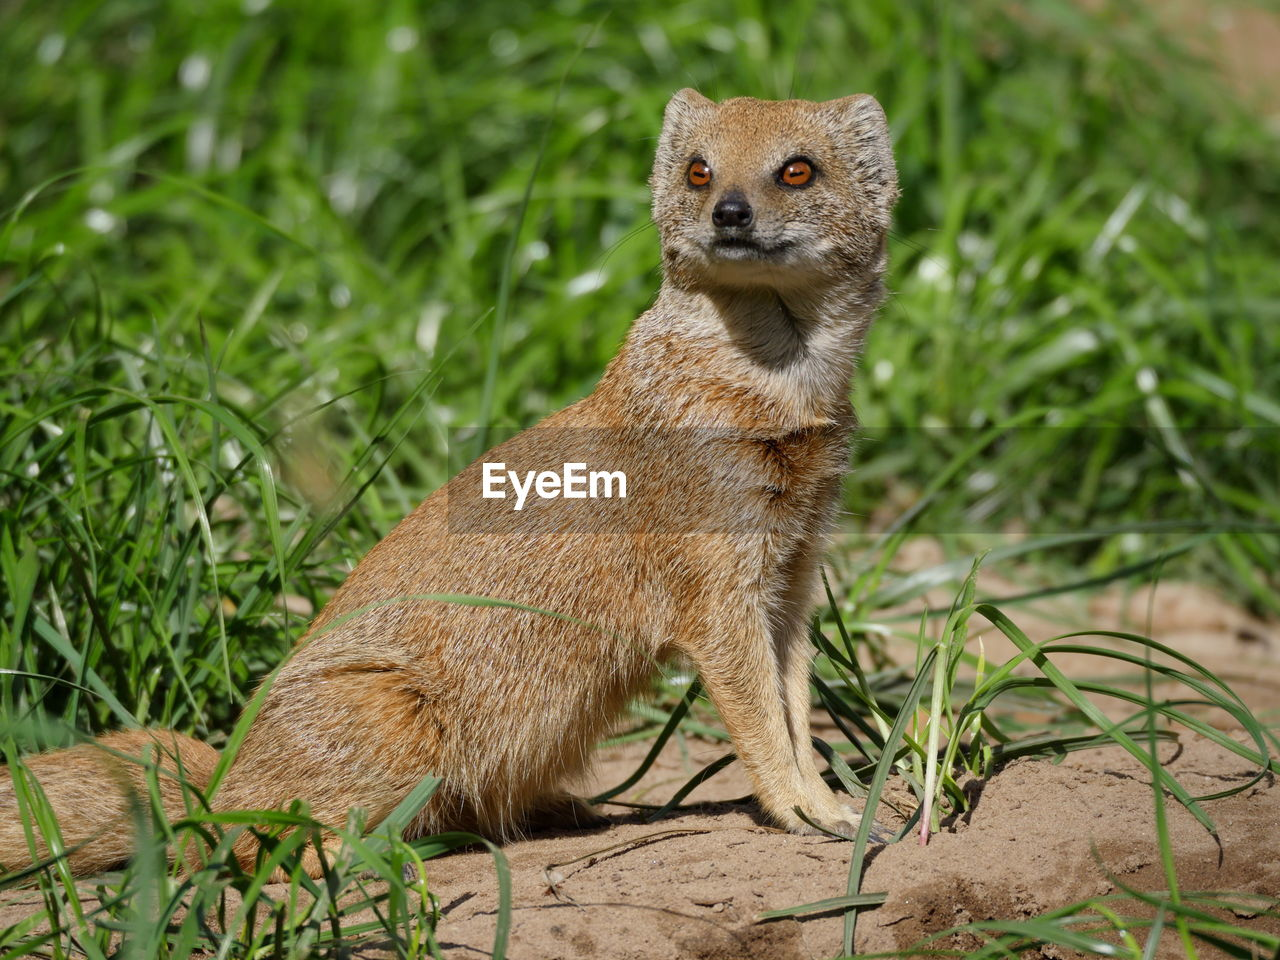 one animal, animal wildlife, animals in the wild, plant, mammal, vertebrate, grass, nature, no people, land, portrait, day, field, looking at camera, meerkat, outdoors, green color